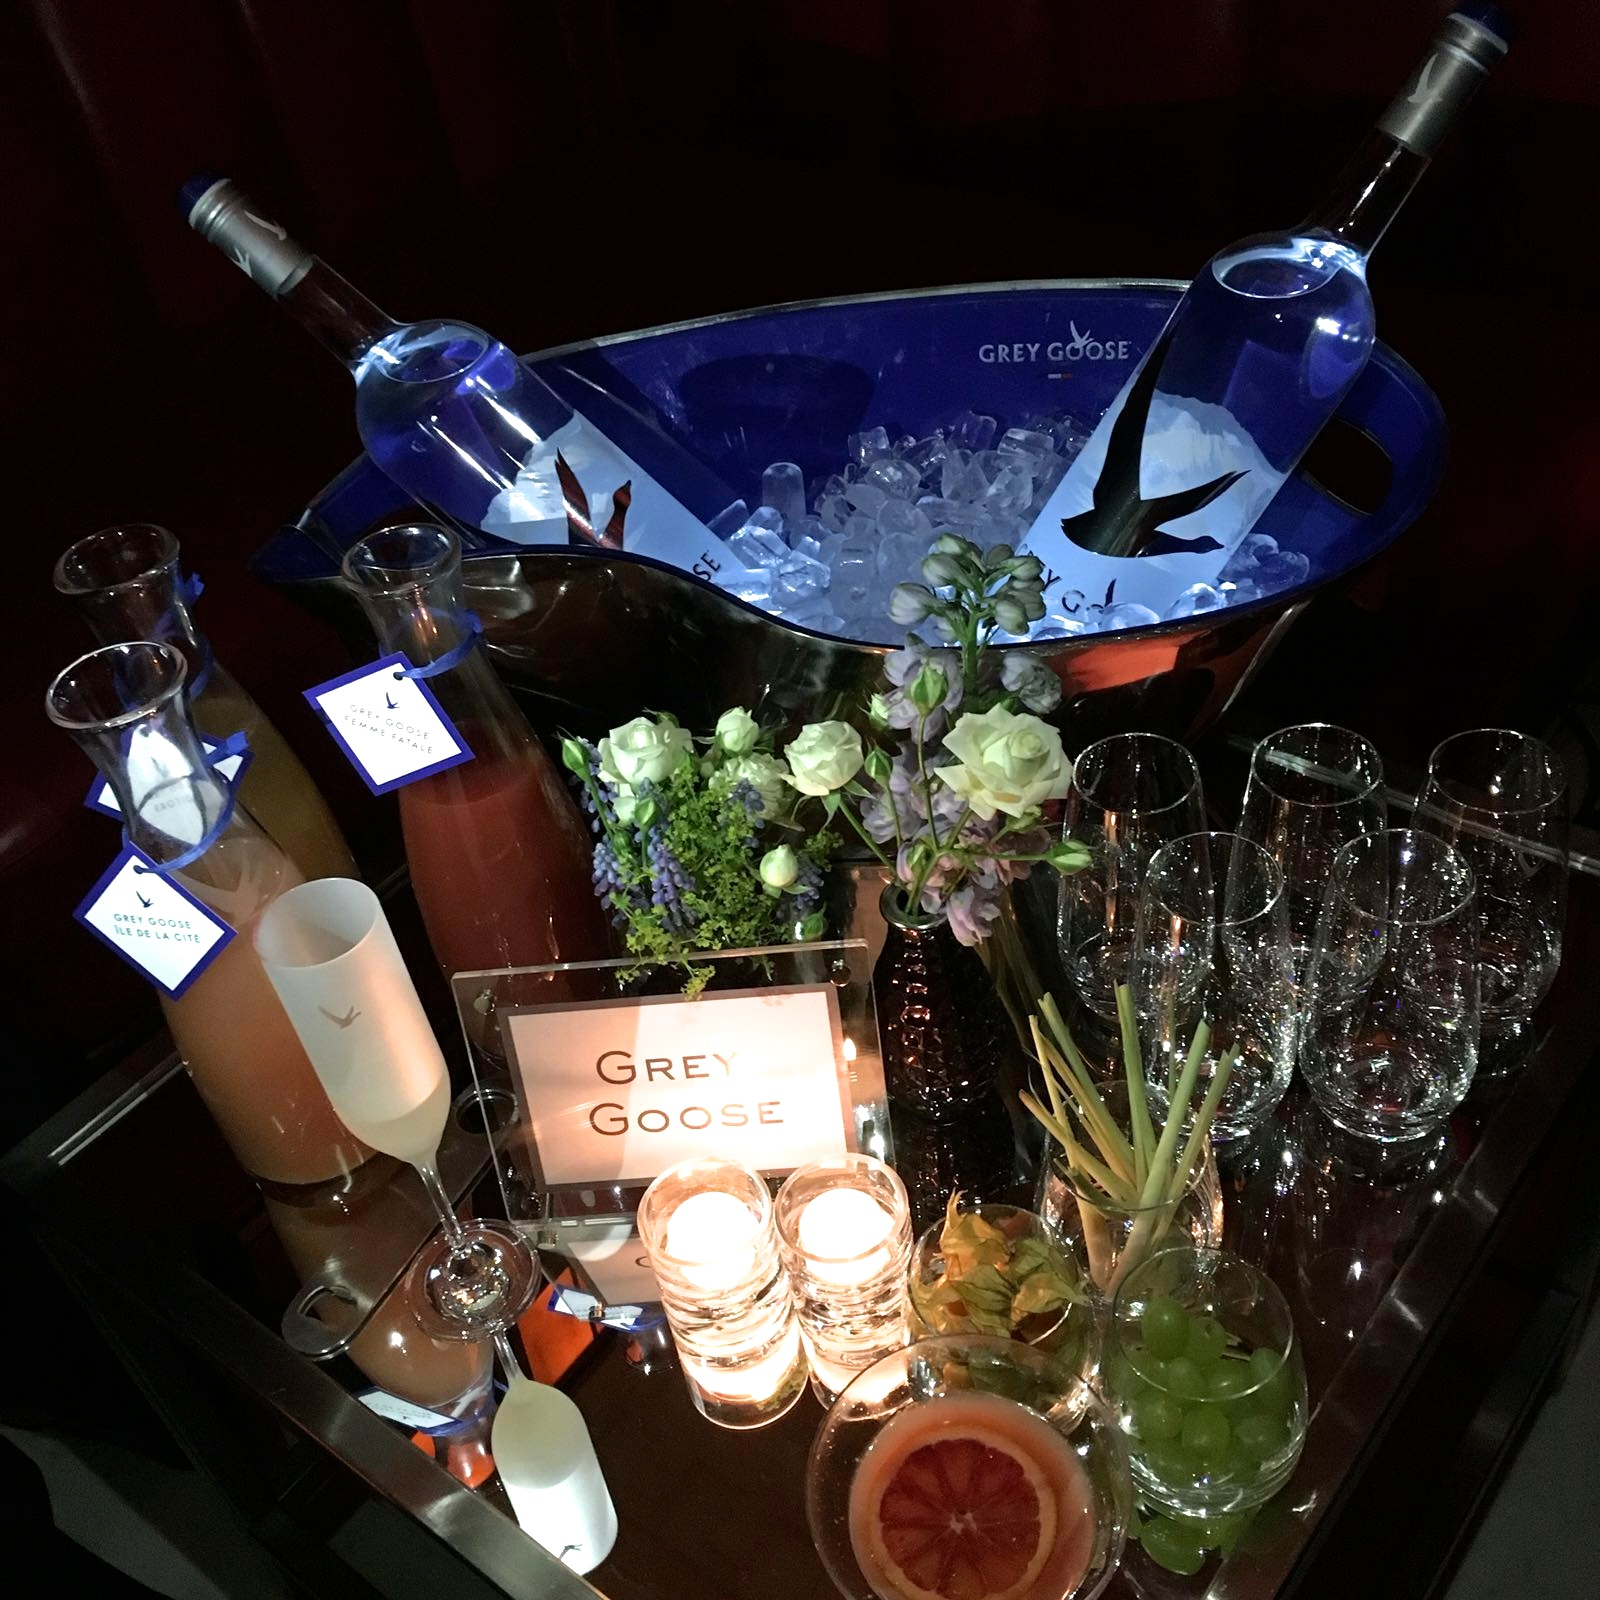 Grey Goose table and bottles at the BAFTA's Harvey Weinstein Afterparty 2016